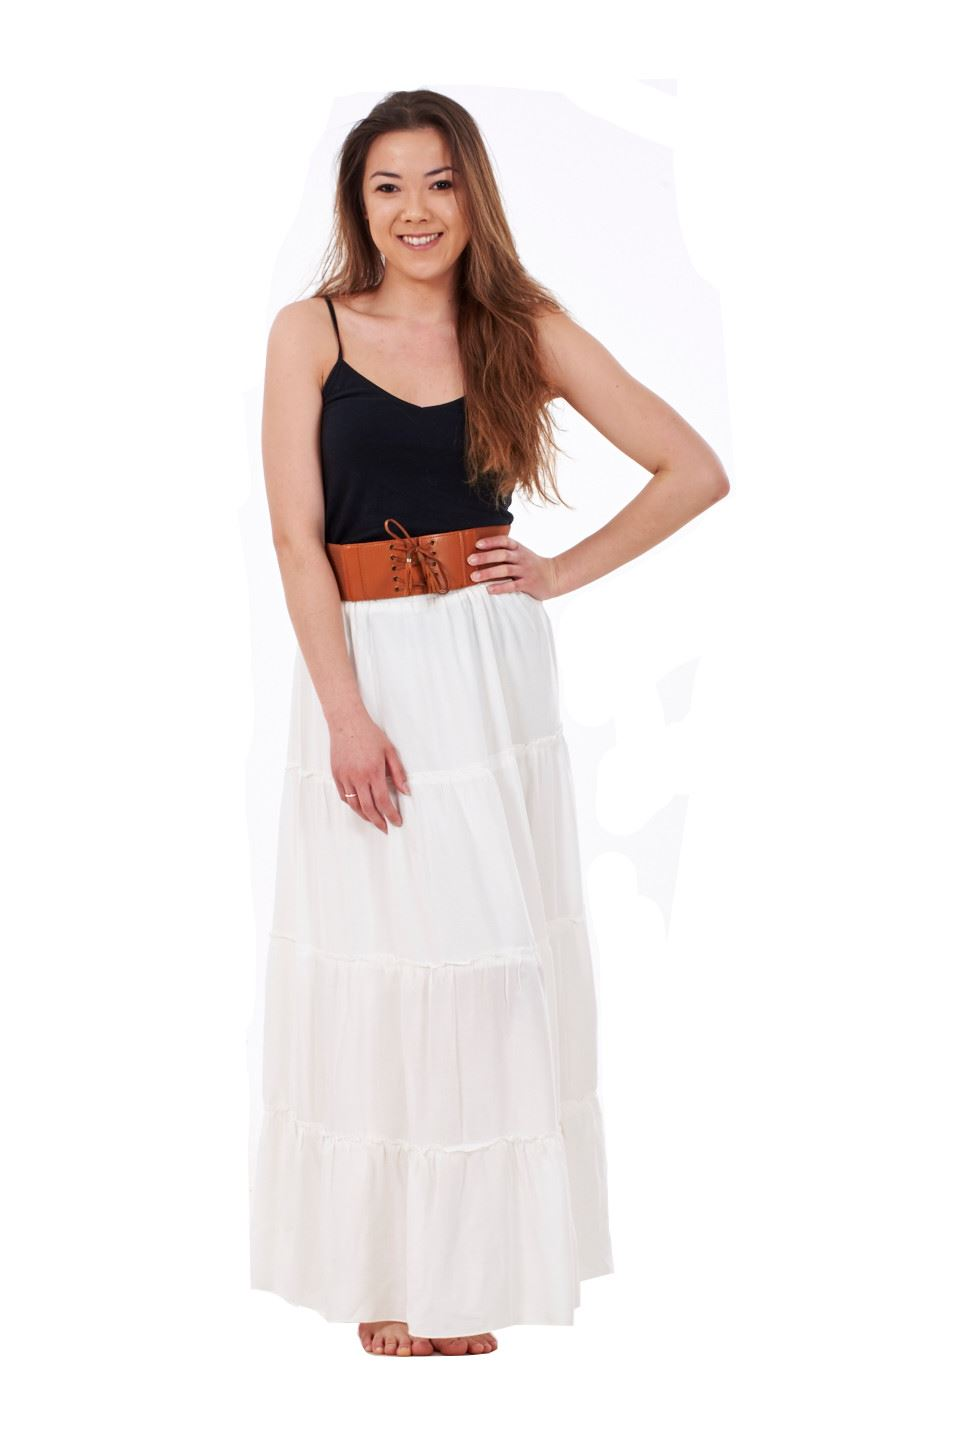 thumbnail 3 - New Ladies Skirt Elasticated Long Maxi High Waist Belted Casual Wear 8 to 14